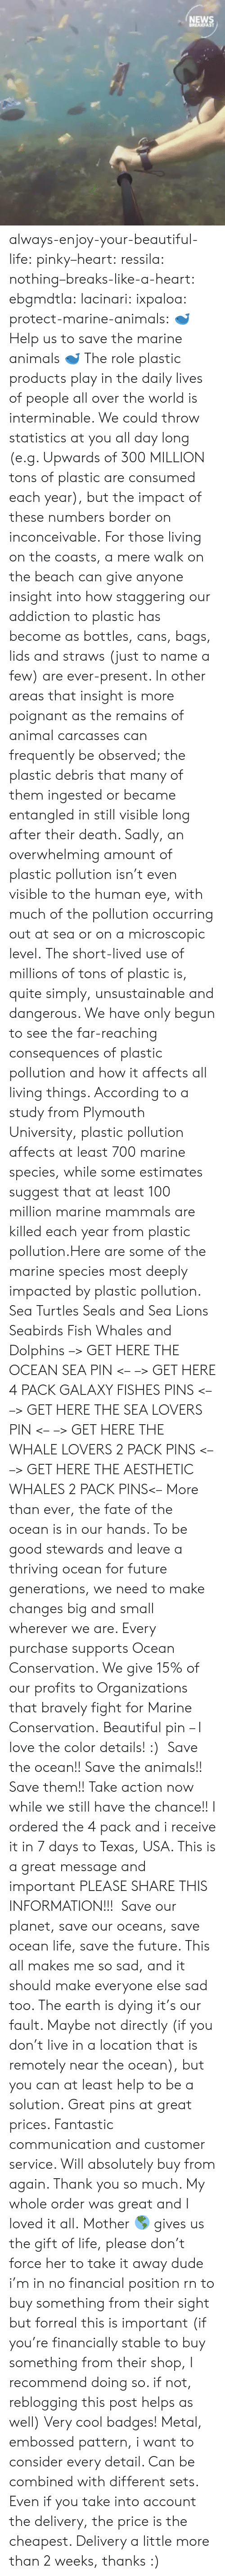 Reaching: NEWS  BREAKFAST always-enjoy-your-beautiful-life:  pinky–heart: ressila:  nothing–breaks-like-a-heart:  ebgmdtla:  lacinari:  ixpaloa:  protect-marine-animals:  🐋 Help us to save the marine animals 🐋 The role plastic products play in the daily lives of people all over the world is interminable. We could throw statistics at you all day long (e.g. Upwards of 300 MILLION tons of plastic are consumed each year), but the impact of these numbers border on inconceivable. For those living on the coasts, a mere walk on the beach can give anyone insight into how staggering our addiction to plastic has become as bottles, cans, bags, lids and straws (just to name a few) are ever-present. In other areas that insight is more poignant as the remains of animal carcasses can frequently be observed; the plastic debris that many of them ingested or became entangled in still visible long after their death. Sadly, an overwhelming amount of plastic pollution isn't even visible to the human eye, with much of the pollution occurring out at sea or on a microscopic level. The short-lived use of millions of tons of plastic is, quite simply, unsustainable and dangerous. We have only begun to see the far-reaching consequences of plastic pollution and how it affects all living things. According to a study from Plymouth University, plastic pollution affects at least 700 marine species, while some estimates suggest that at least 100 million marine mammals are killed each year from plastic pollution.Here are some of the marine species most deeply impacted by plastic pollution. Sea Turtles Seals and Sea Lions Seabirds Fish Whales and Dolphins –> GET HERE THE OCEAN SEA PIN <– –> GET HERE 4 PACK GALAXY FISHES PINS <– –> GET HERE THE SEA LOVERS PIN <– –> GET HERE THE WHALE LOVERS 2 PACK PINS <– –> GET HERE THE AESTHETIC WHALES 2 PACK PINS<– More than ever, the fate of the ocean is in our hands. To be good stewards and leave a thriving ocean for future generations, we need to make changes big and small wherever we are. Every purchase supports Ocean Conservation. We give 15% of our profits to Organizations that bravely fight for Marine Conservation.  Beautiful pin – I love the color details! :)   Save the ocean!! Save the animals!! Save them!! Take action now while we still have the chance!!  I ordered the 4 pack and i receive it in 7 days to Texas, USA. This is a great message and important PLEASE SHARE THIS INFORMATION!!!   Save our planet, save our oceans, save ocean life, save the future. This all makes me so sad, and it should make everyone else sad too. The earth is dying it's our fault. Maybe not directly (if you don't live in a location that is remotely near the ocean), but you can at least help to be a solution.  Great pins at great prices. Fantastic communication and customer service. Will absolutely buy from again. Thank you so much. My whole order was great and I loved it all. Mother 🌎 gives us the gift of life, please don't force her to take it away  dude i'm in no financial position rn to buy something from their sight but forreal this is important (if you're financially stable to buy something from their shop, I recommend doing so. if not, reblogging this post helps as well)  Very cool badges! Metal, embossed pattern, i want to consider every detail. Can be combined with different sets. Even if you take into account the delivery, the price is the cheapest. Delivery a little more than 2 weeks, thanks :)